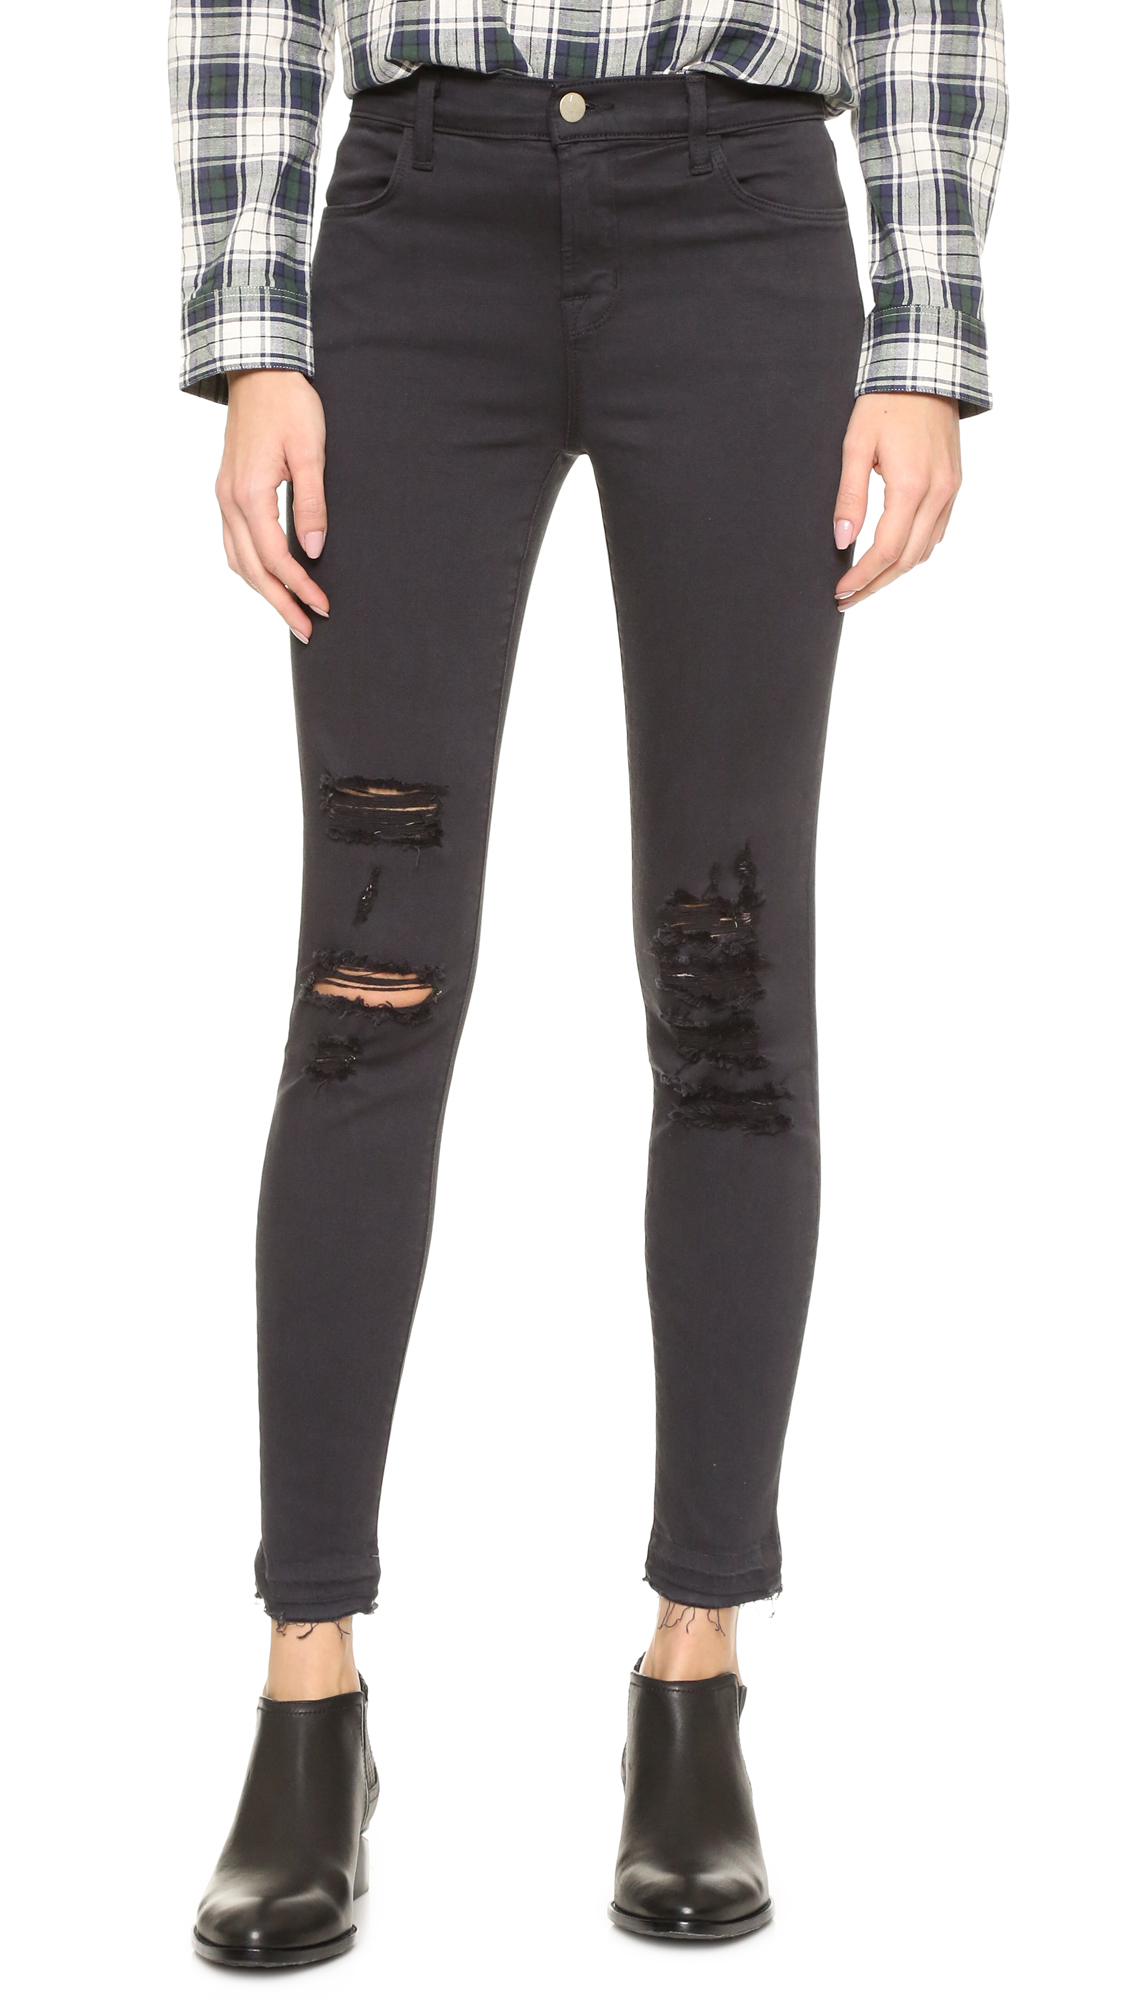 J Brand Jeans | SHOPBOP | Extra 25% Off Sale Styles Use Code: SCORE17